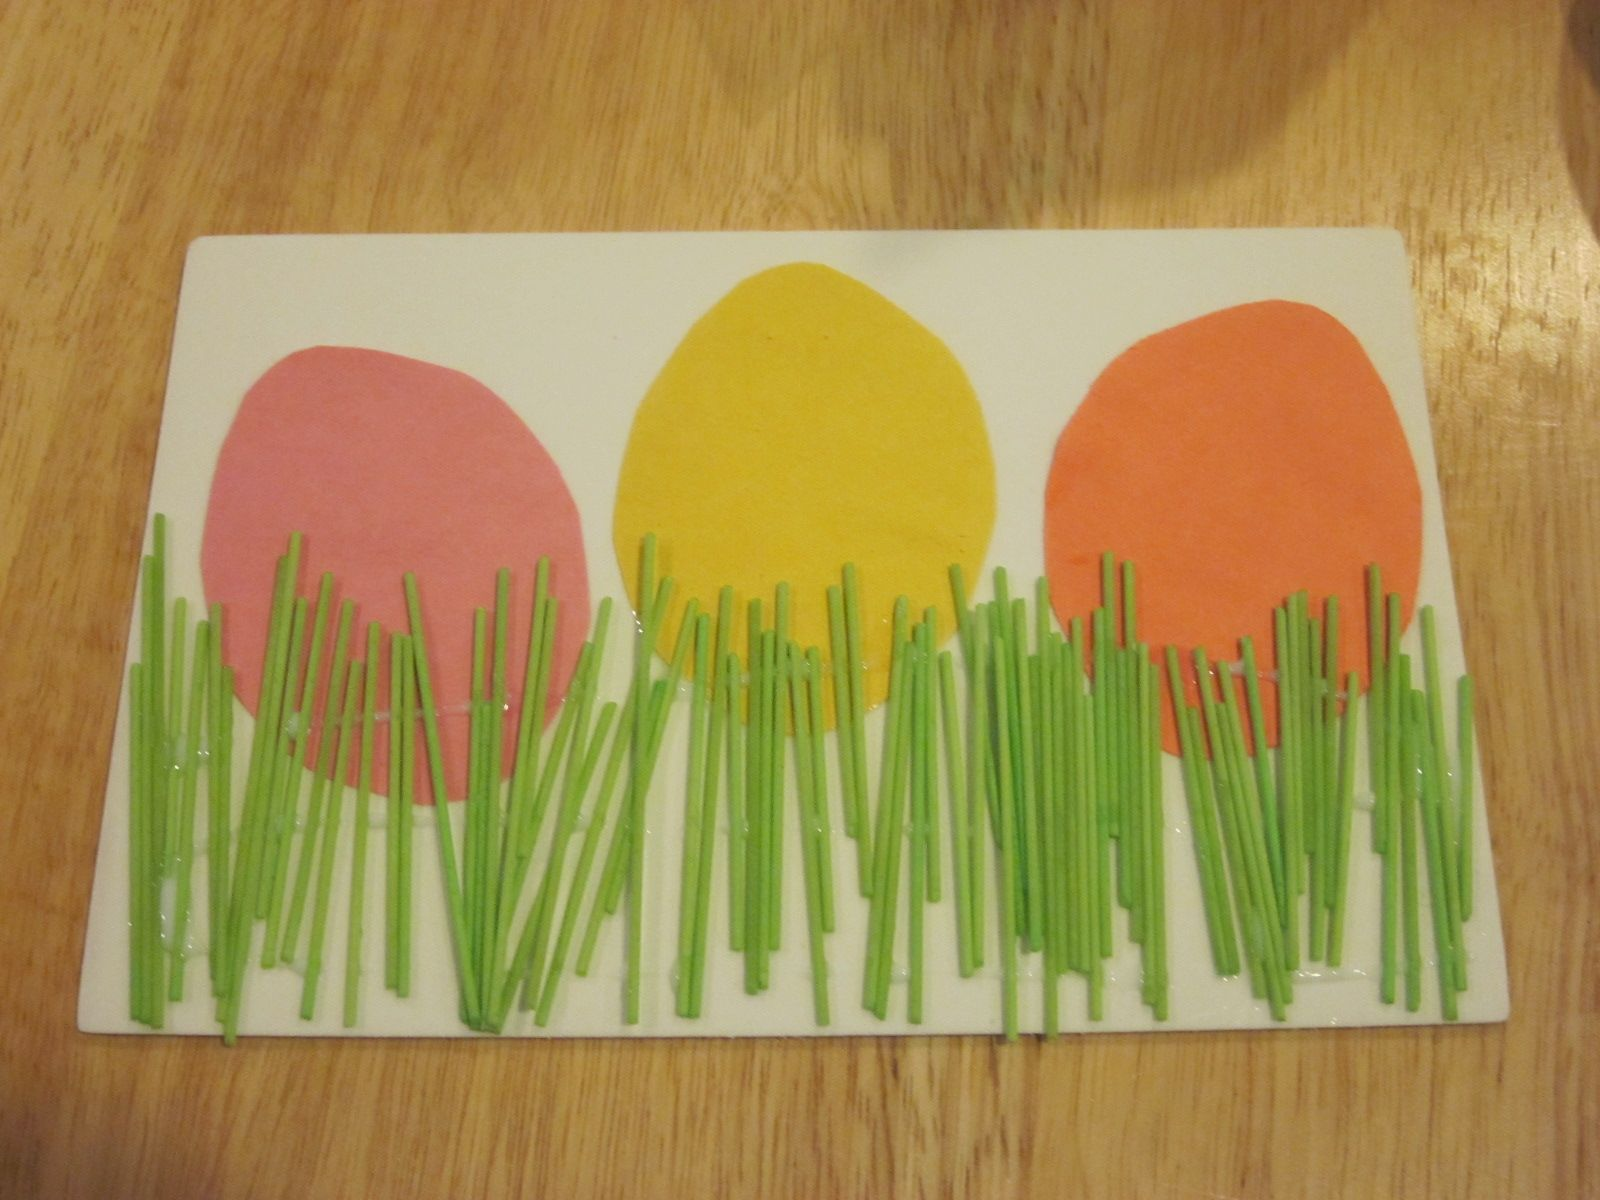 Easter arts and crafts for preschoolers - Blog Easter Eggs Hiding In The Grass Spring Easter Preschool Crafts For Kids